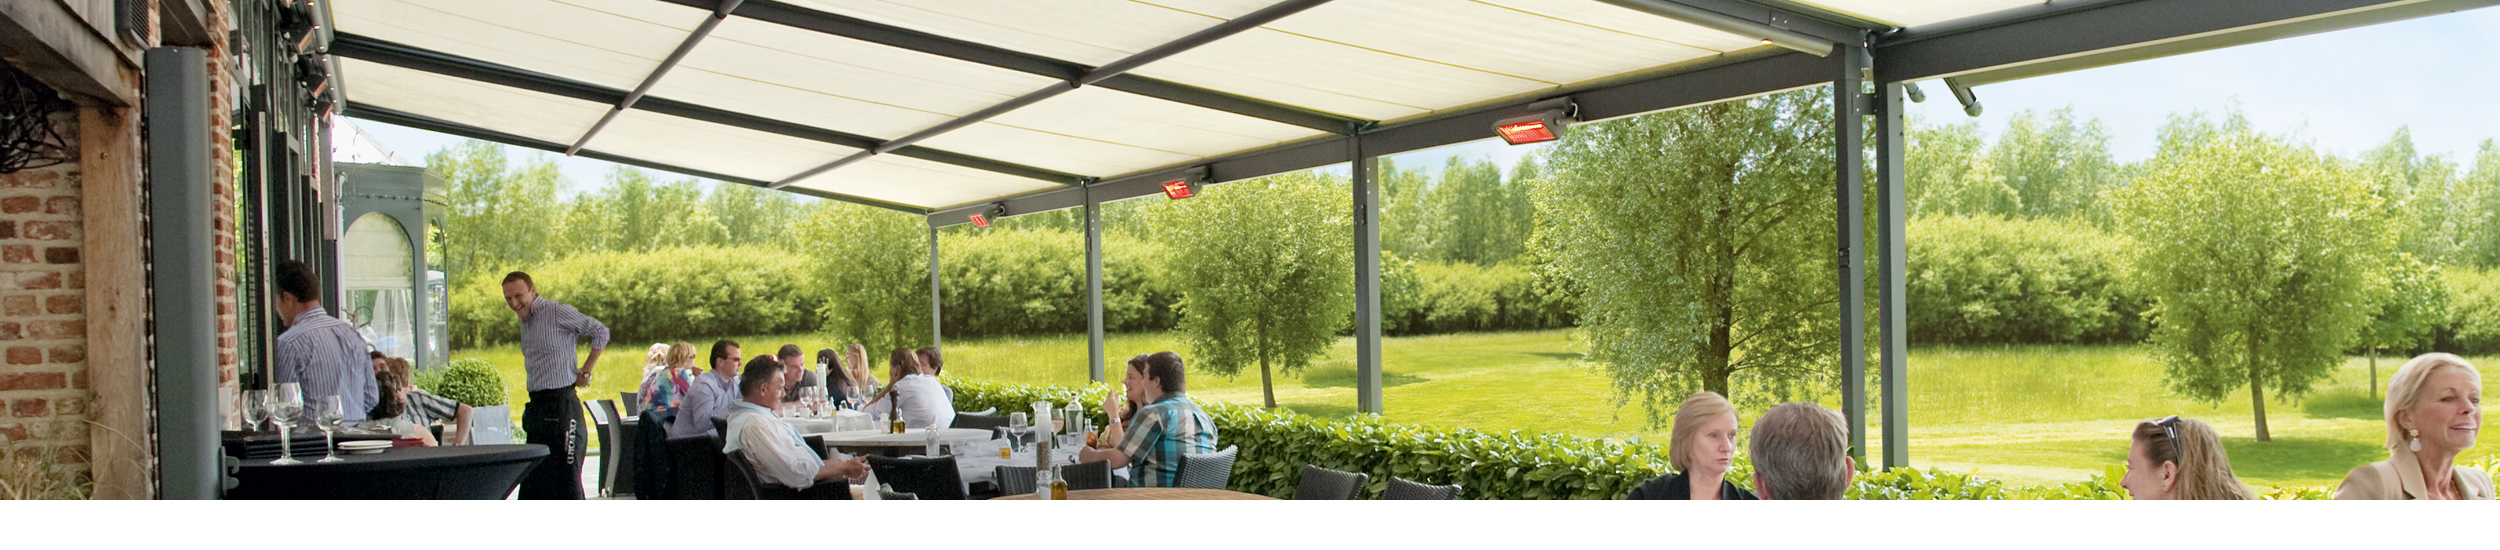 Plaza Pro Led Weinor Markisen